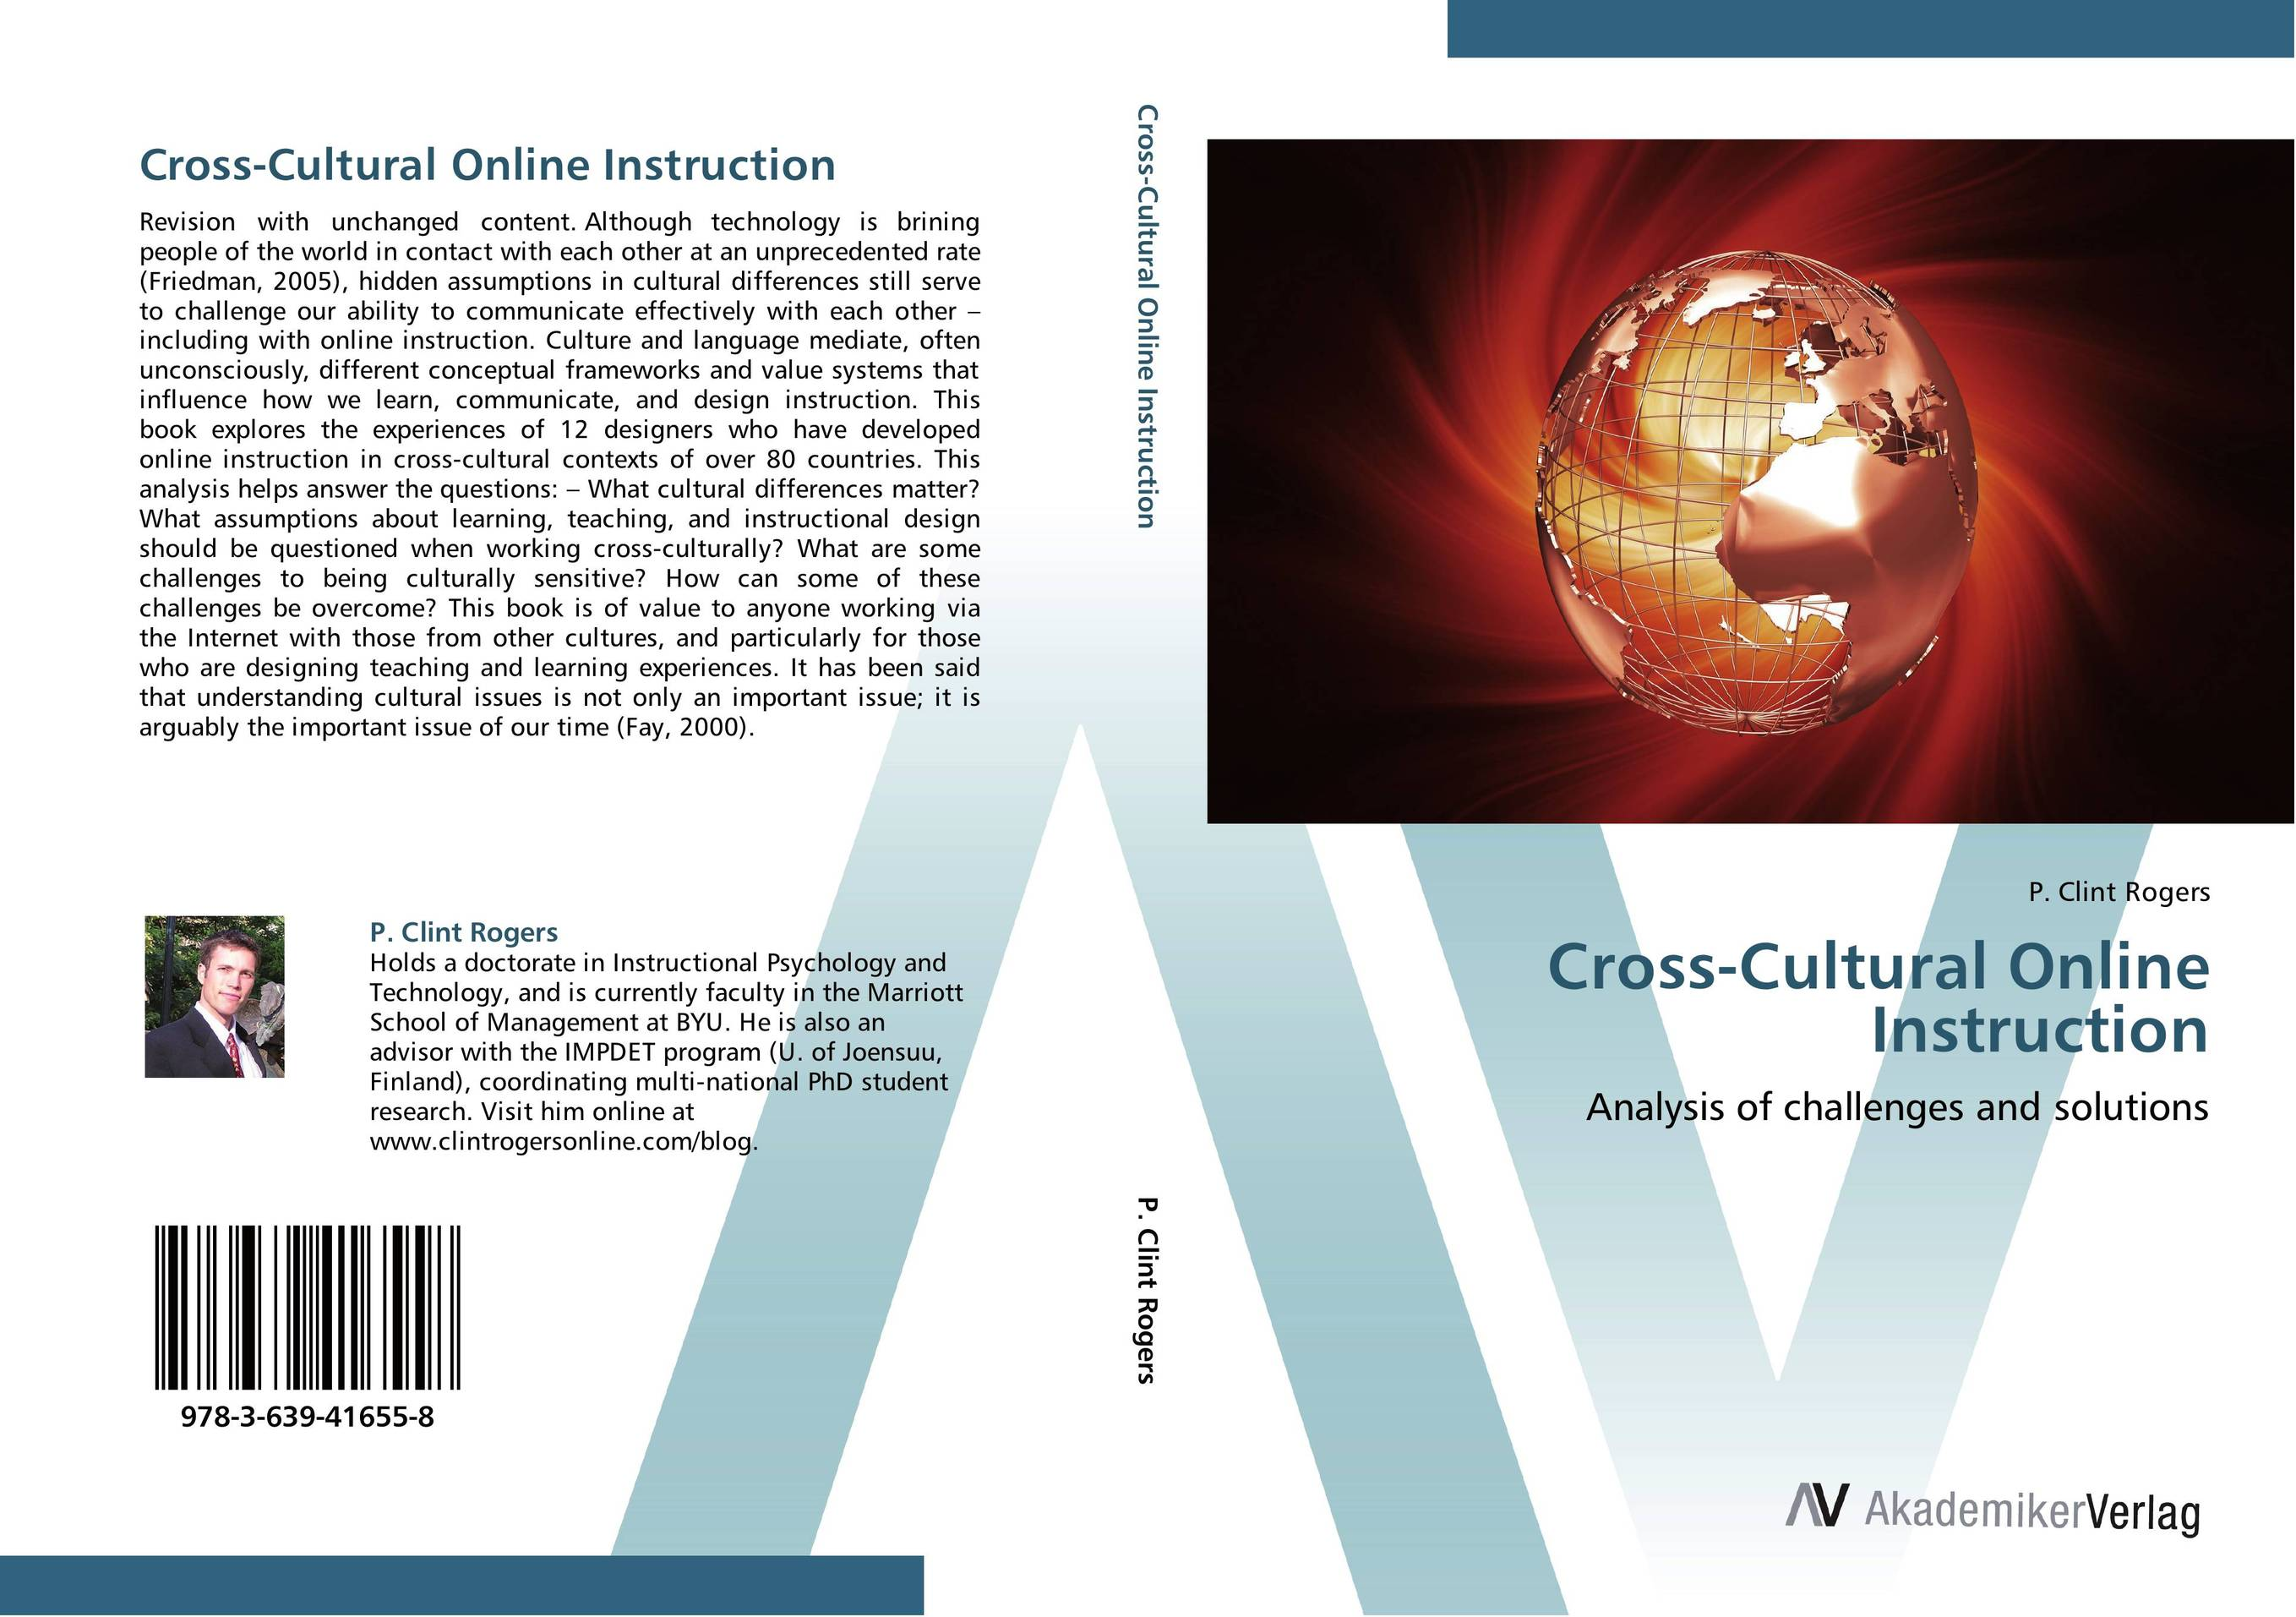 coleman cross cultural management 339 research Interdisciplinary journal of information, knowledge, and management volume 3, 2008 editor: kathy lynch performance attributions: a cross cultural study.